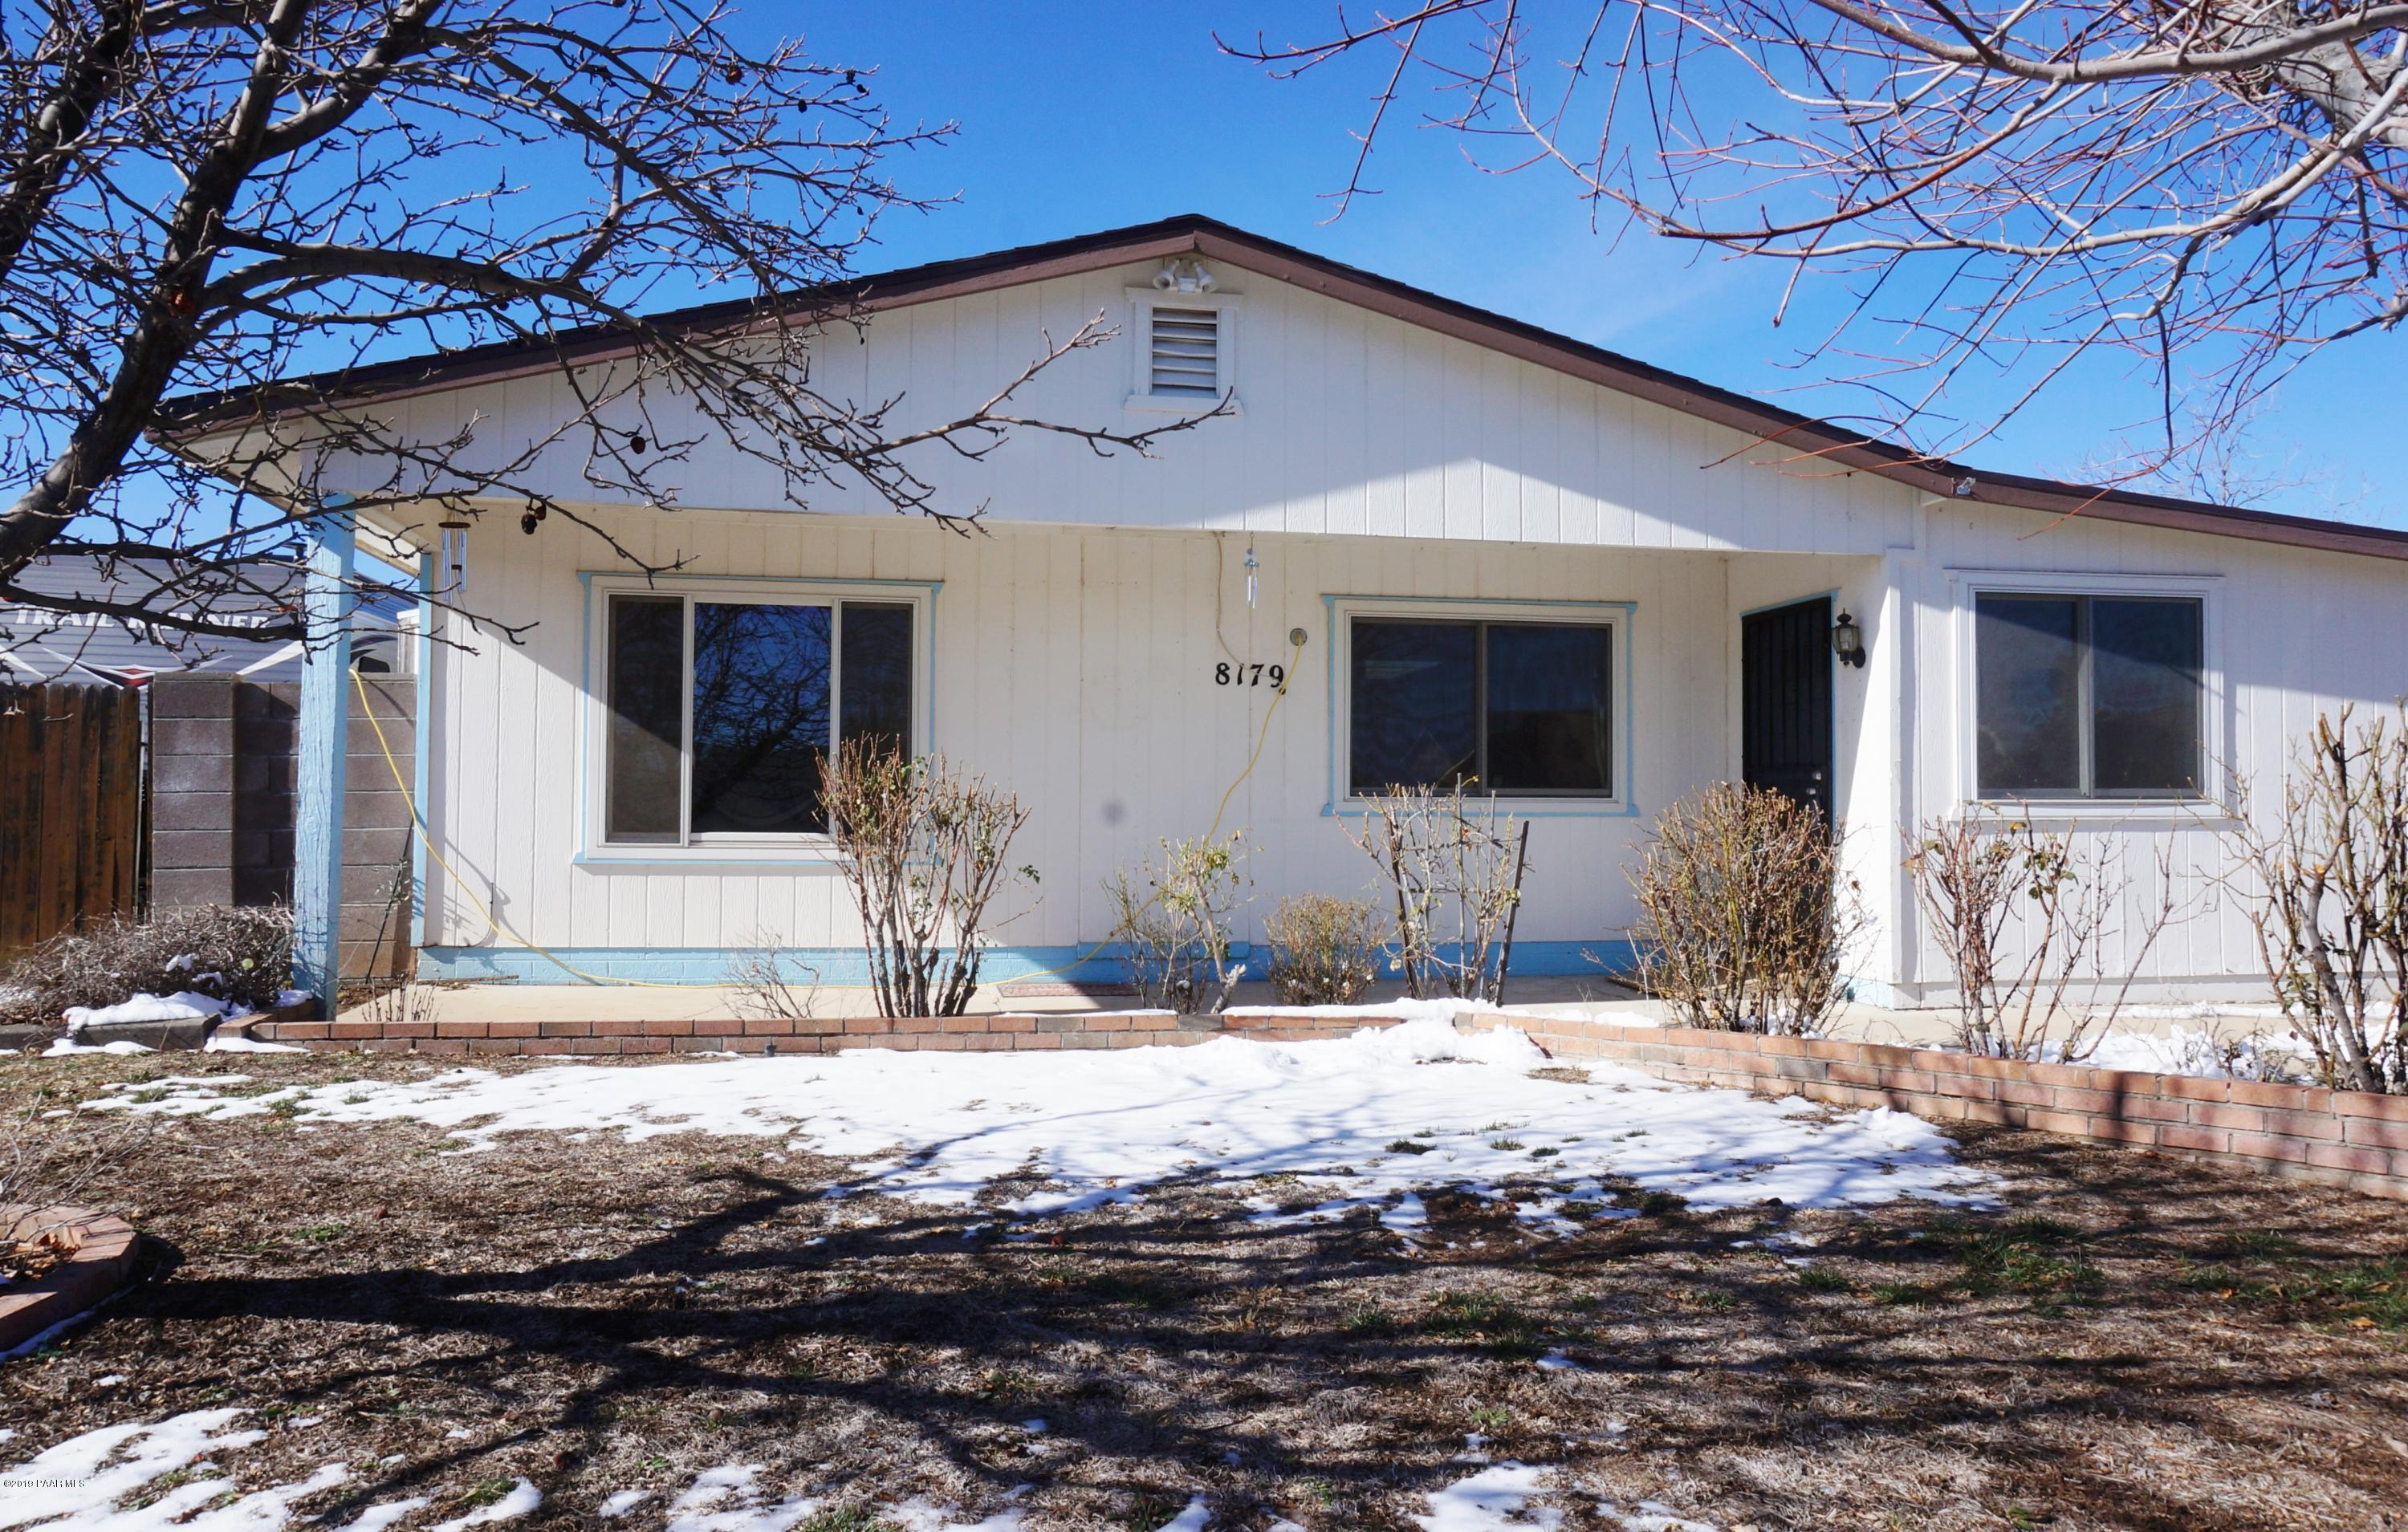 8179 E Prescott Road, Prescott Valley Az 86314